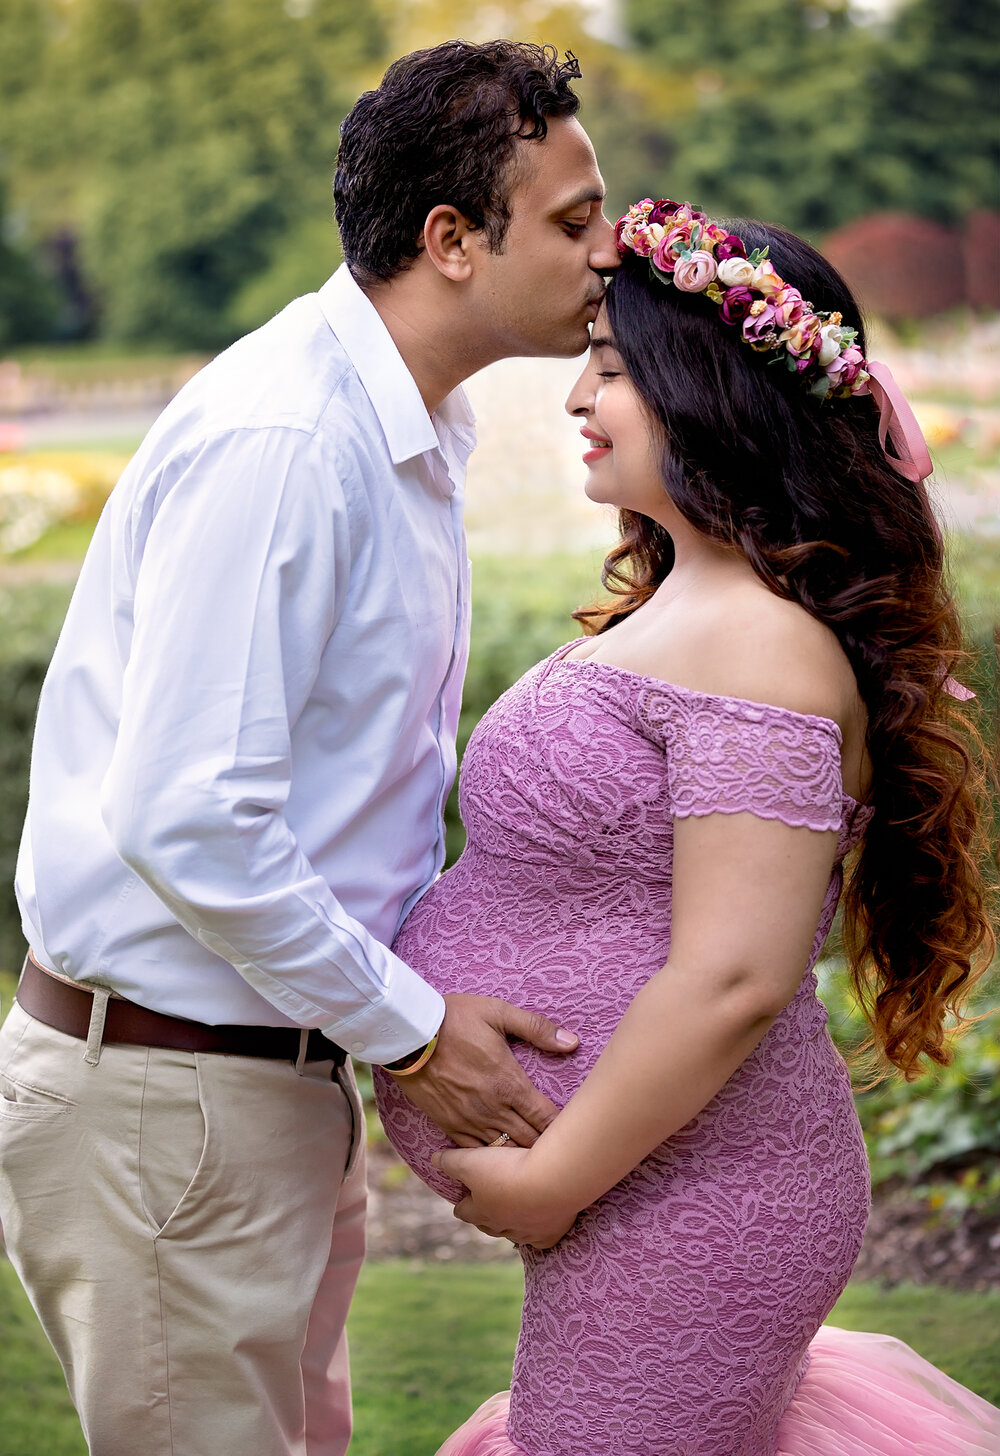 Professional maternity photography Leeds, Bradford, York, Harrogate, Wakefield: beautiful expecting couple during their maternity photo shoot in Bradford, West Yorkshire